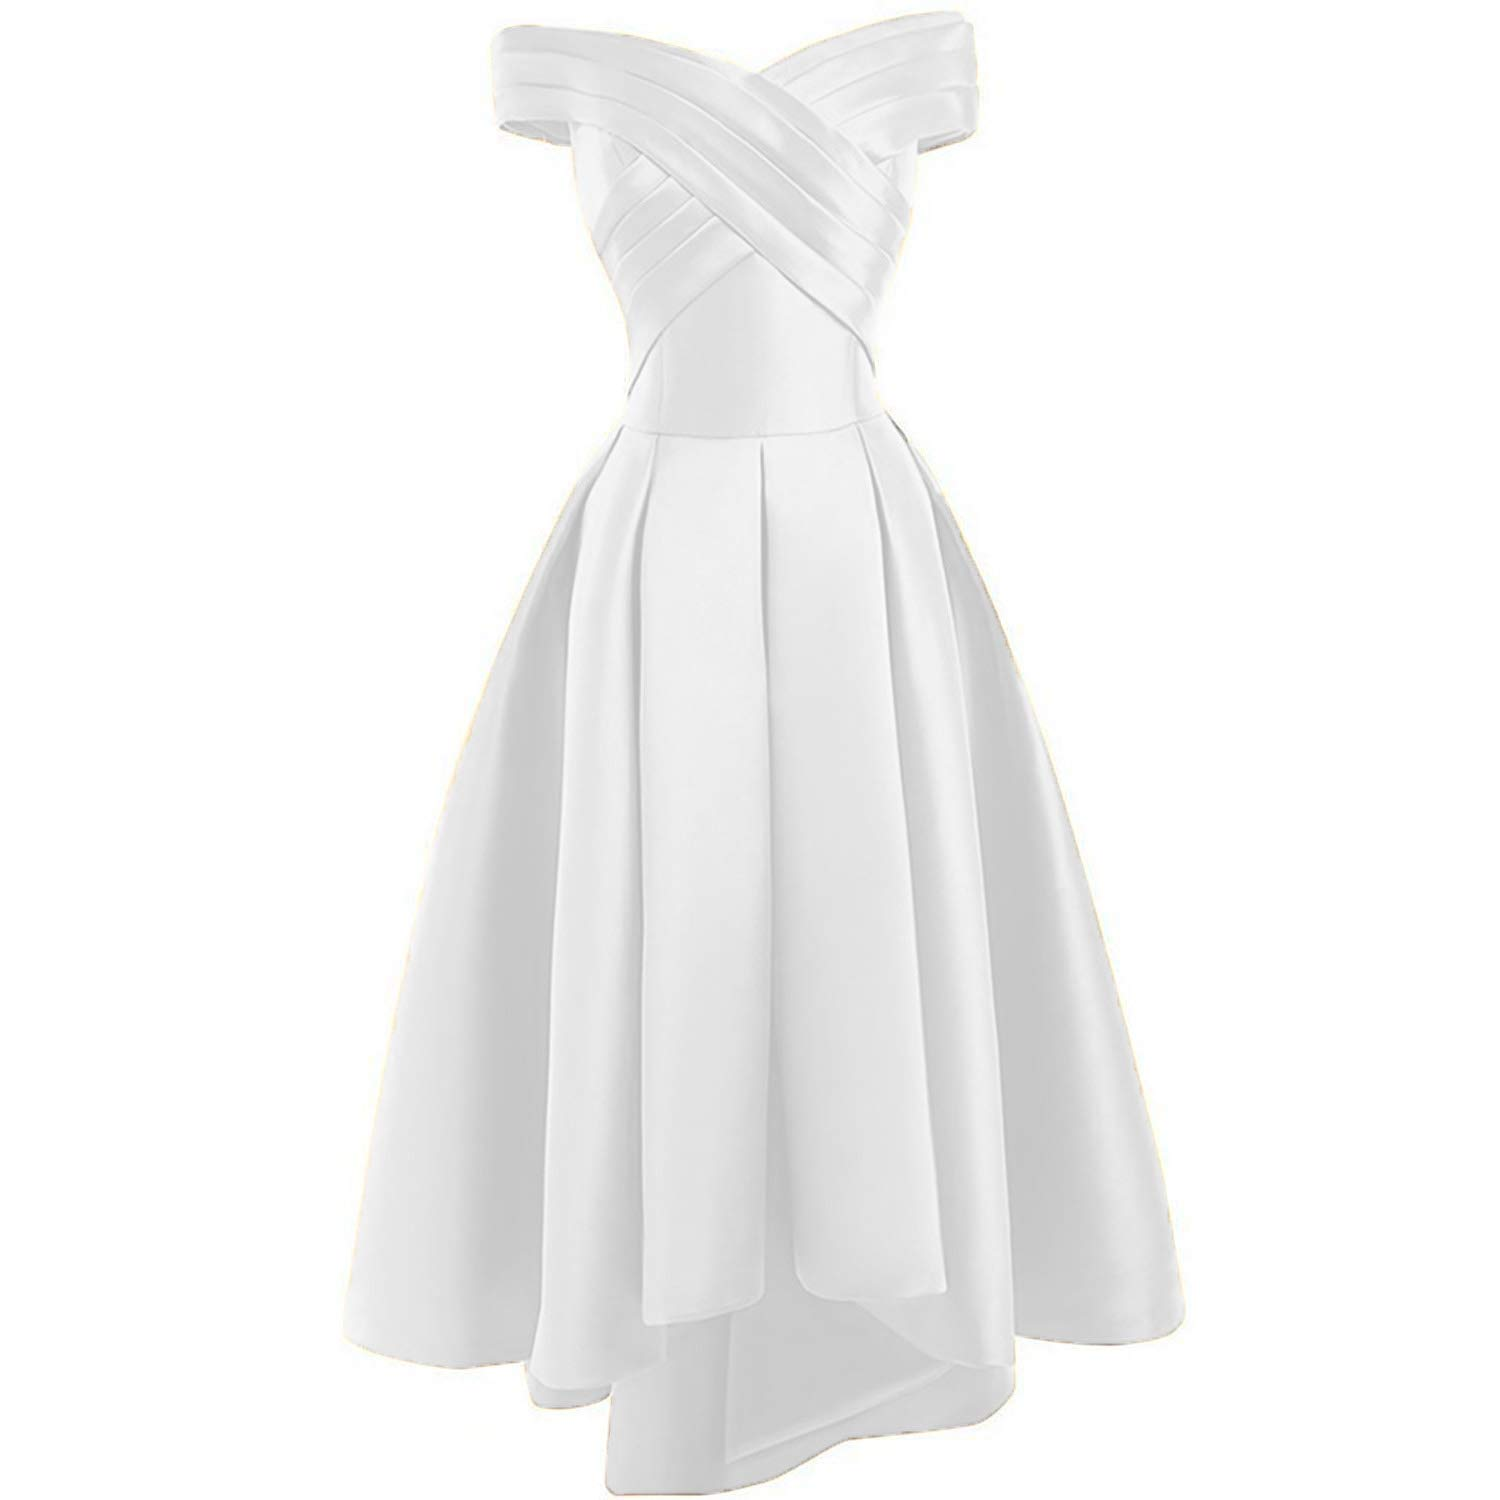 White Dreagel Women's High Low Prom Dresses Off Shoulder Pleatd Evening Homecoming Dress